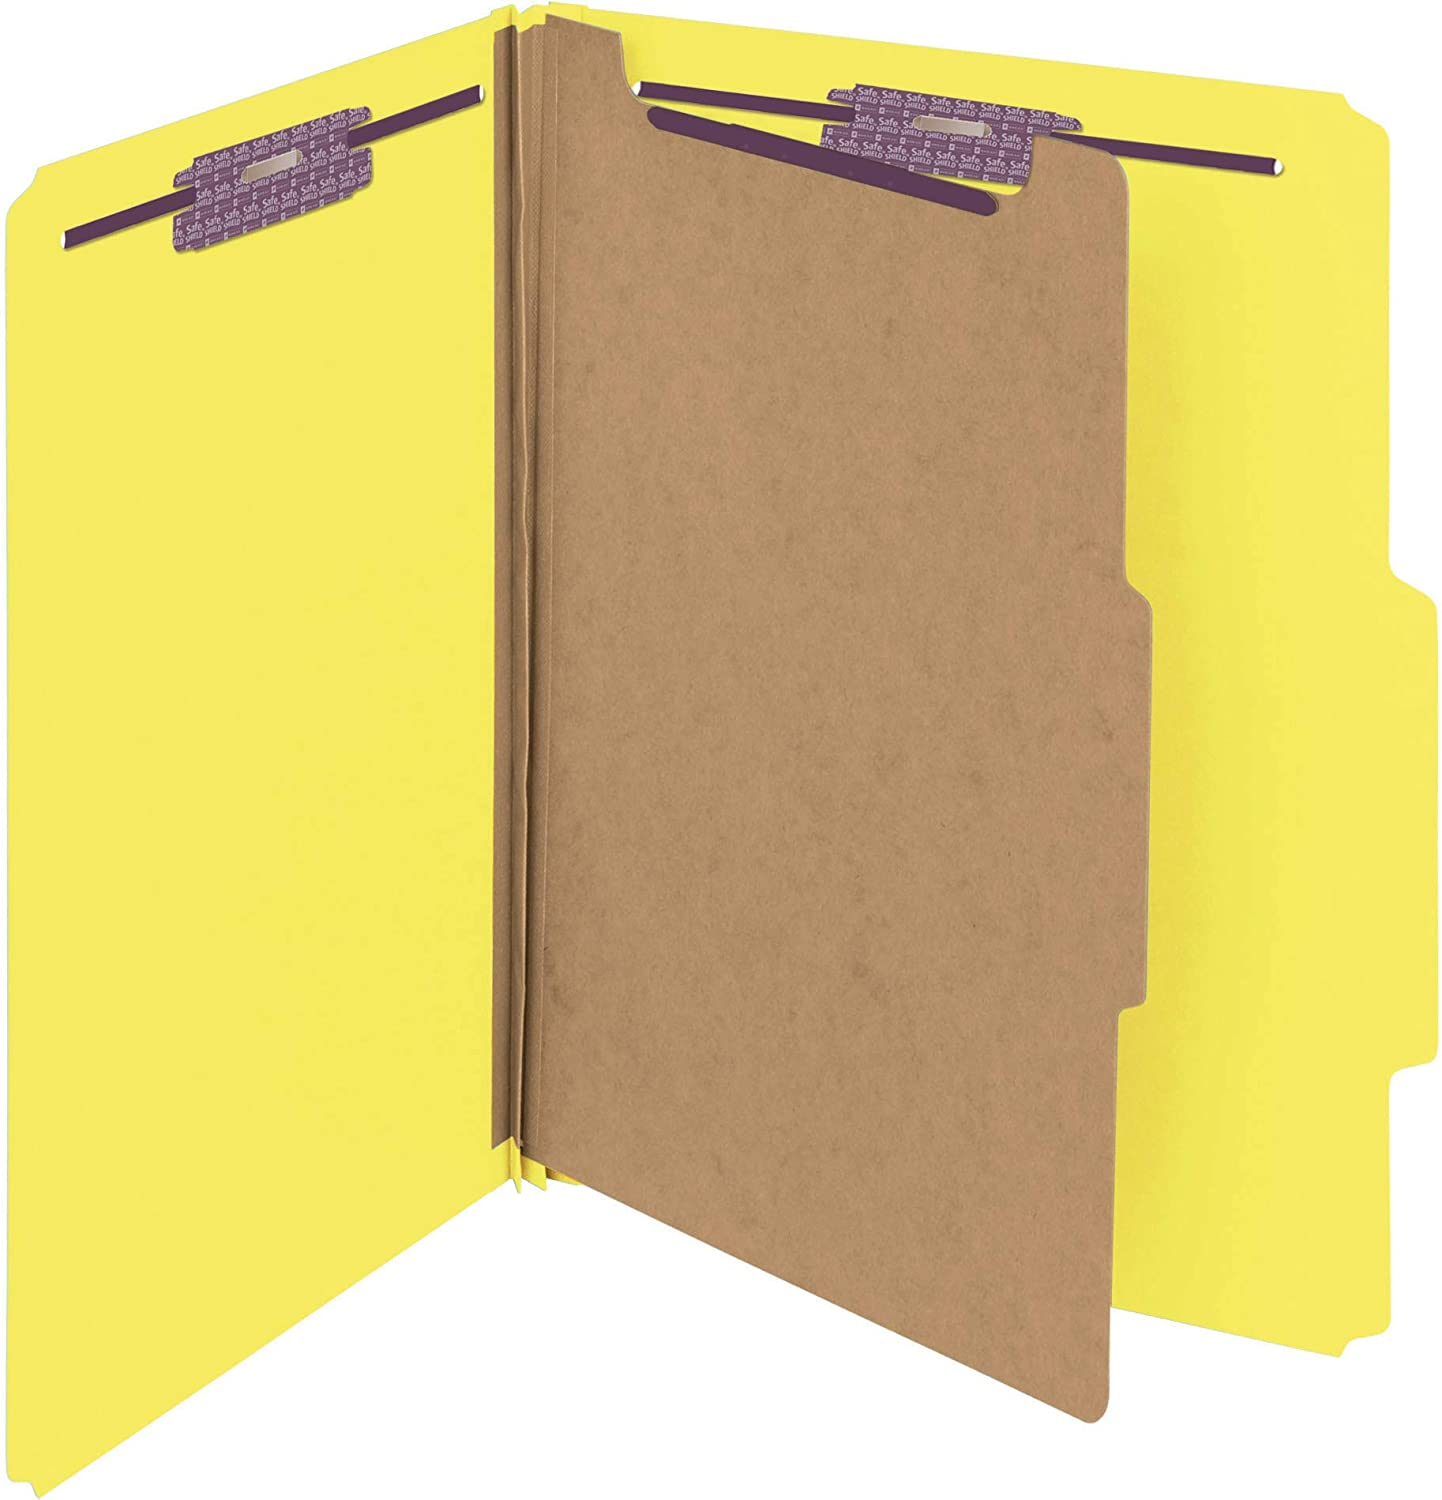 "Smead Pressboard Classification File Folder with SafeSHIELD Fasteners, 1 Divider, 2"" Expansion, Letter Size, Yellow, 10 per Box (13734)"